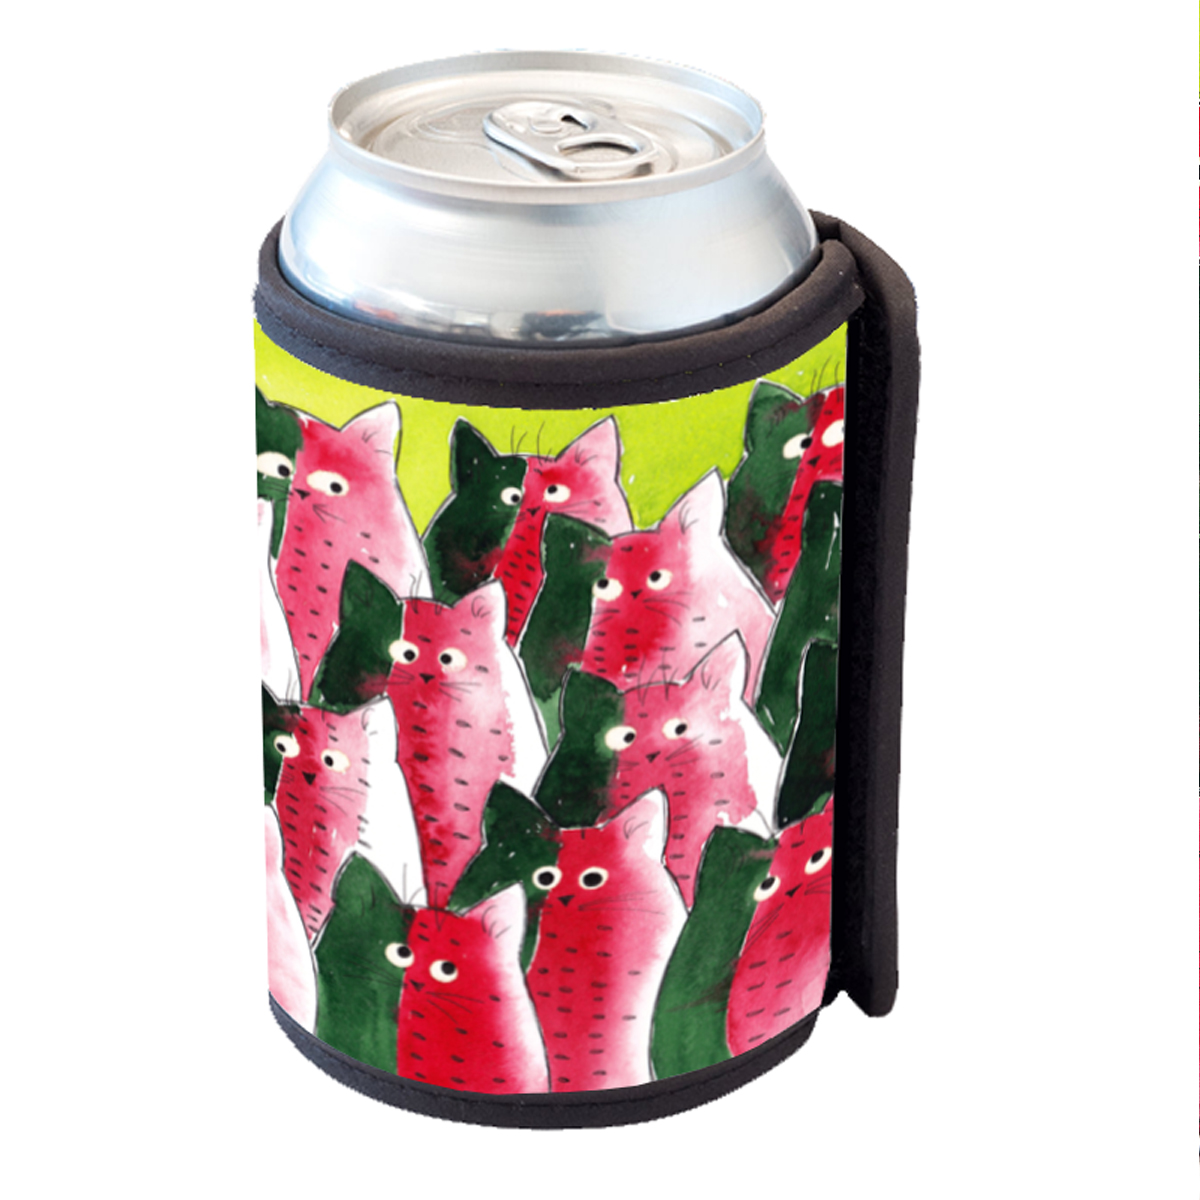 KuzmarK Insulated Drink Can Cooler Hugger - Watermelon Kitties Abstract Cat Art by Denise Every